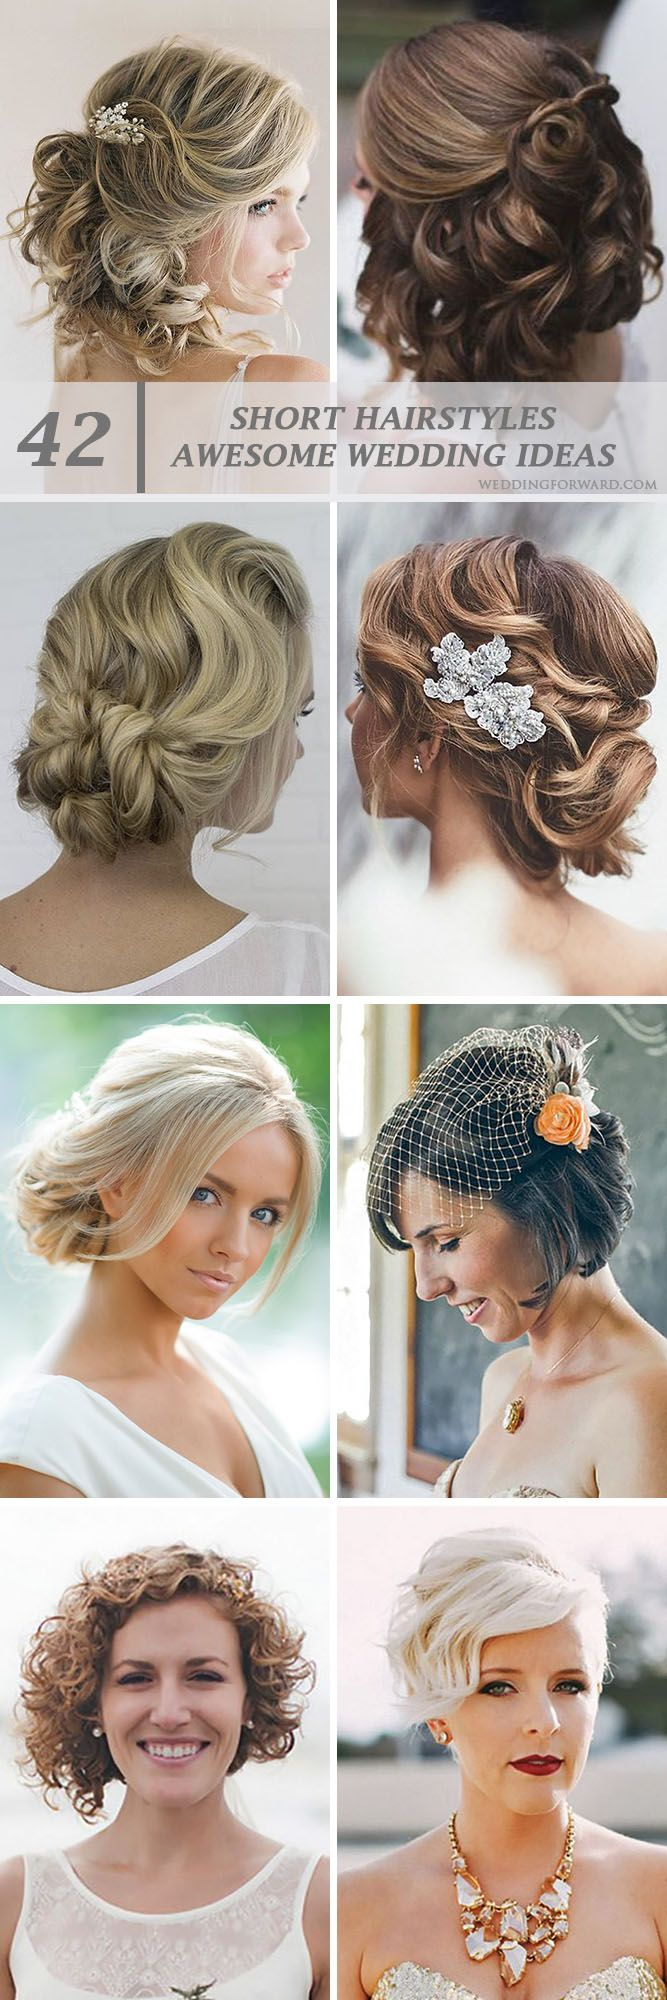 42 Short Wedding Hairstyle Ideas So Good You'd Want To Cut Your Hair ❤ If your...